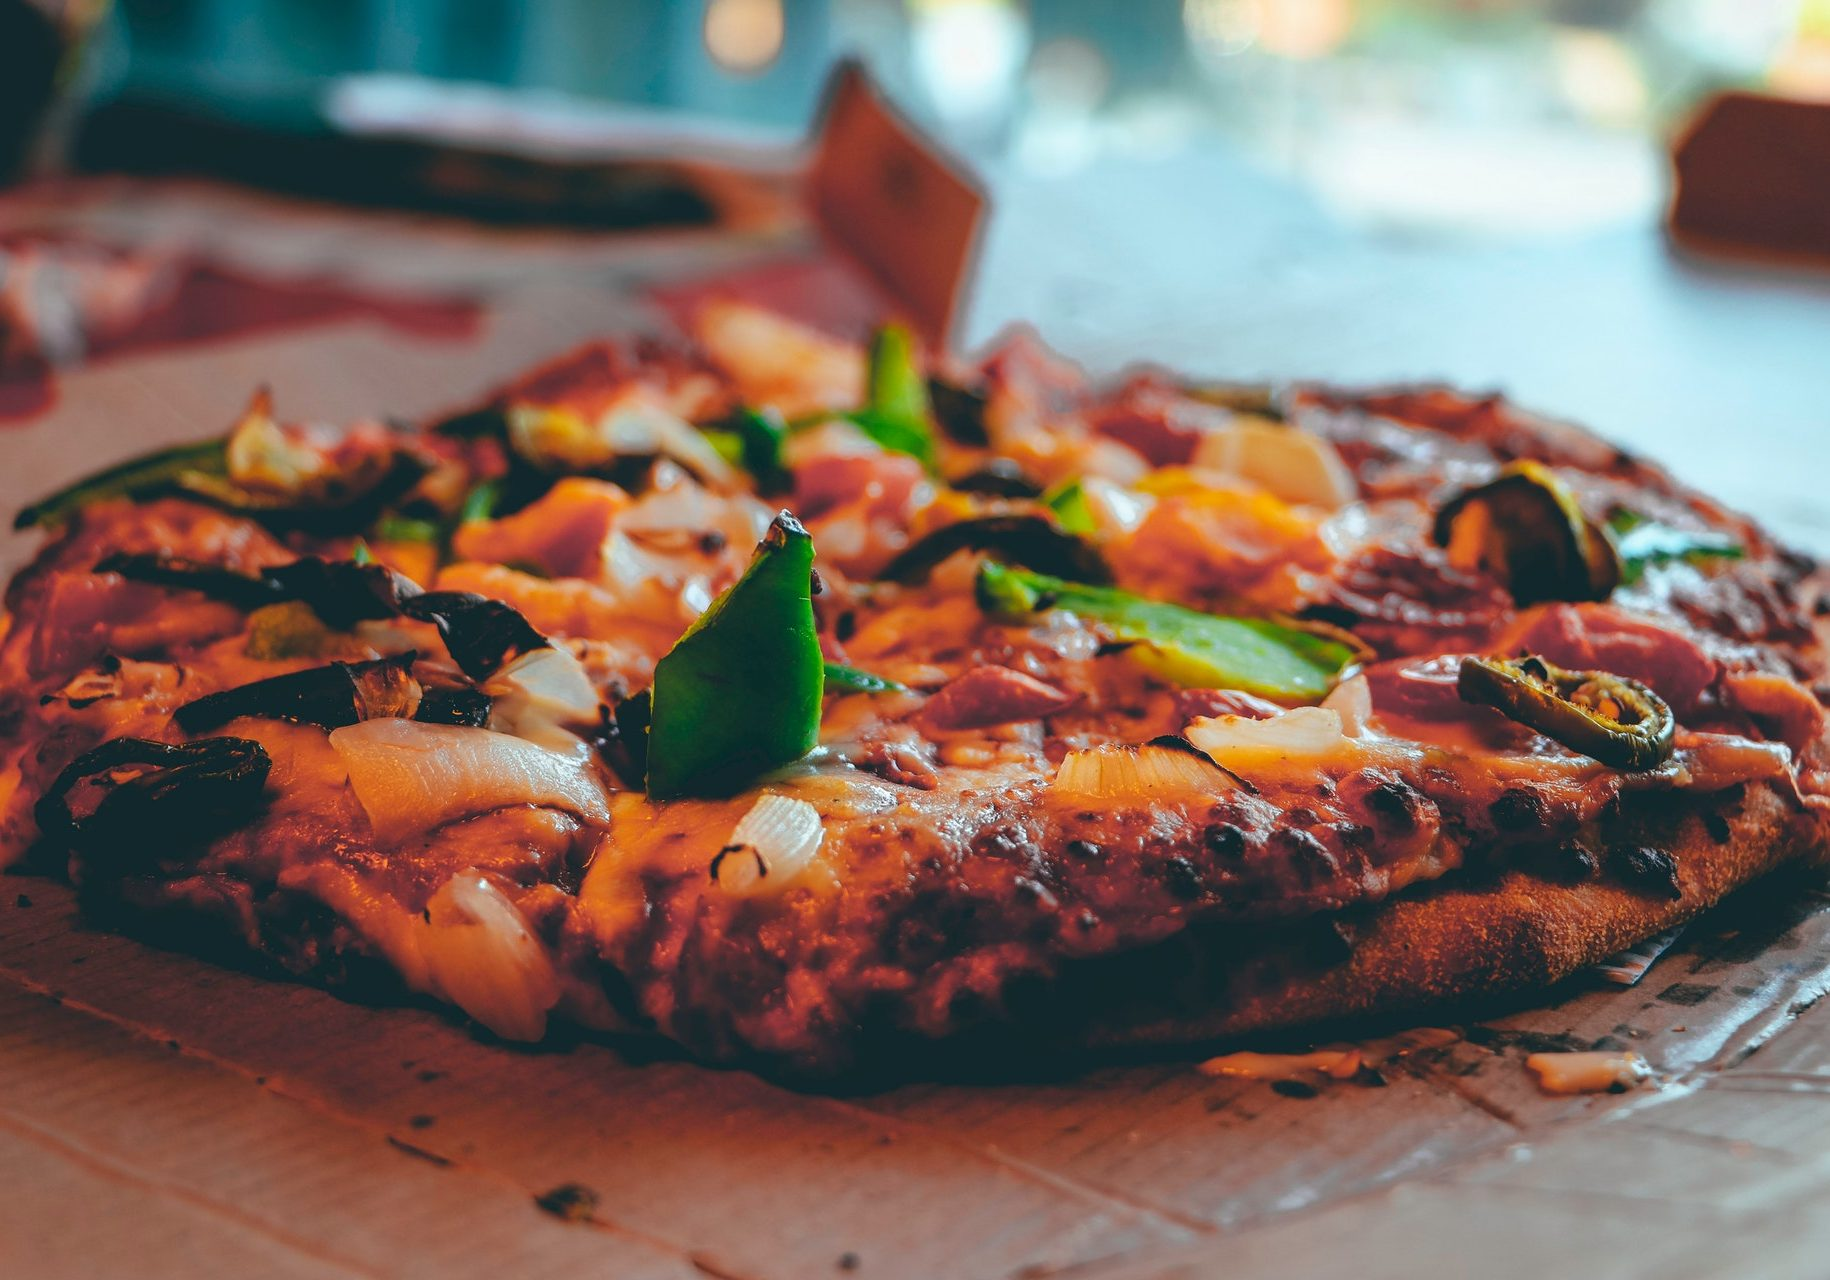 selective-focus-photography-of-baked-pizza-3053082